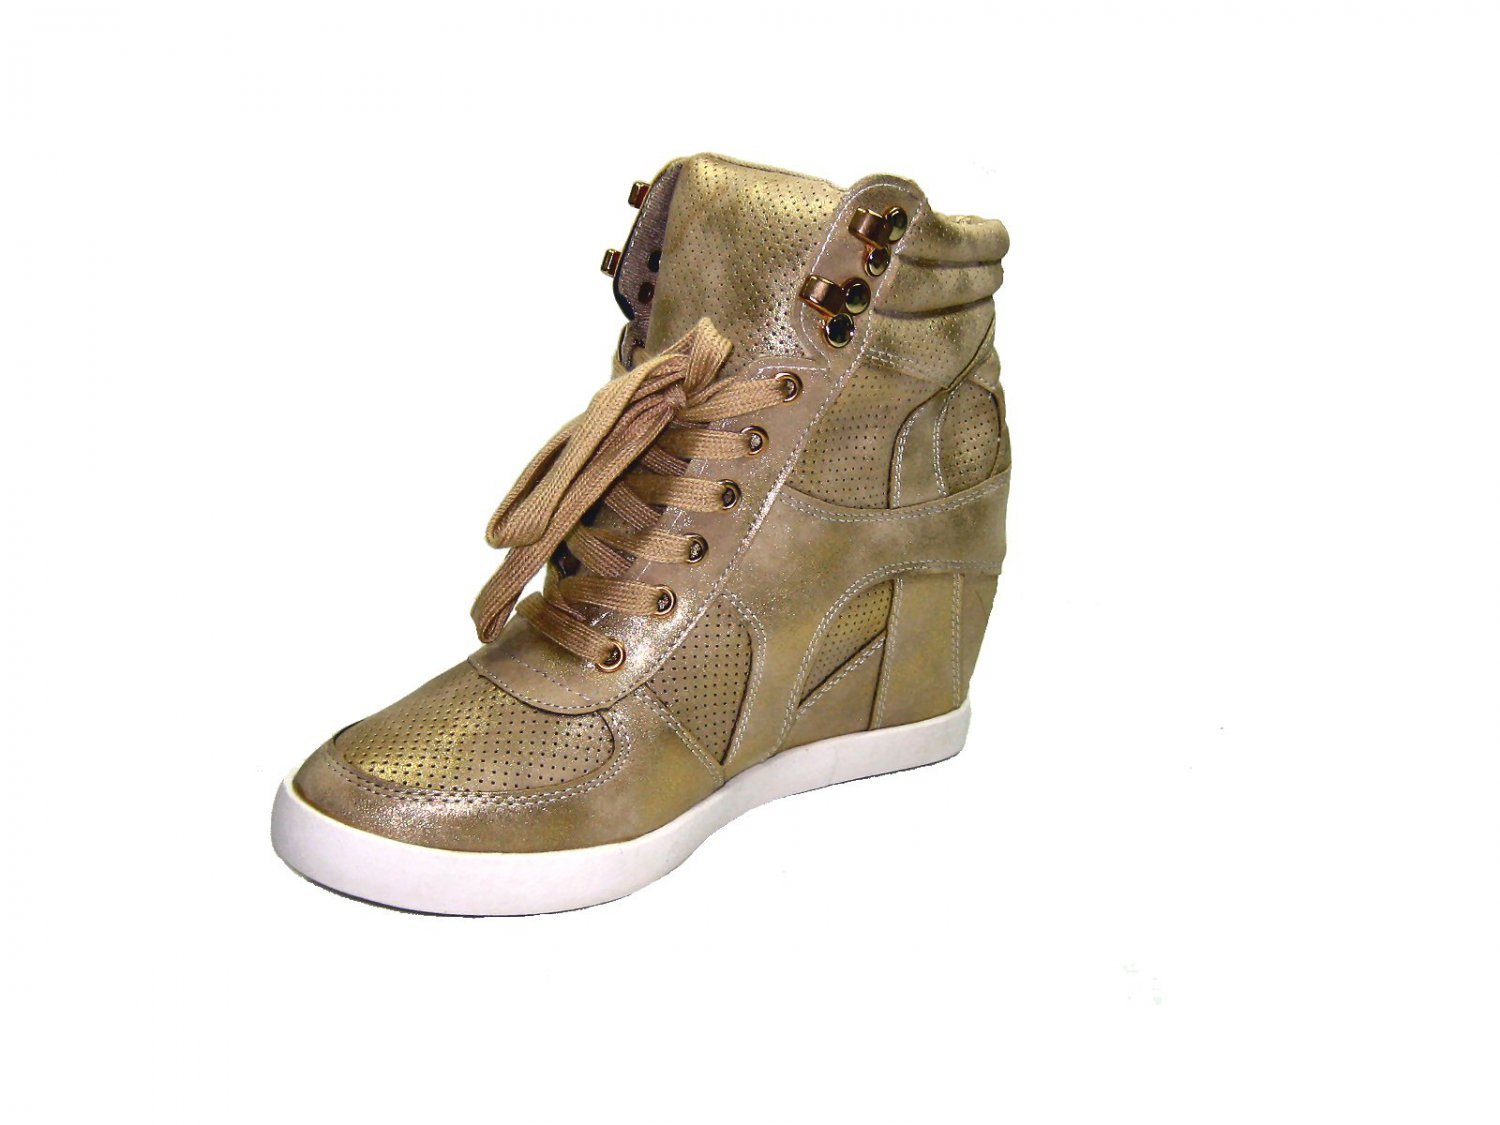 Top Moda Eric-9 high top 3 inch hidden wedge womens fashion sneakers vegan gold size 7